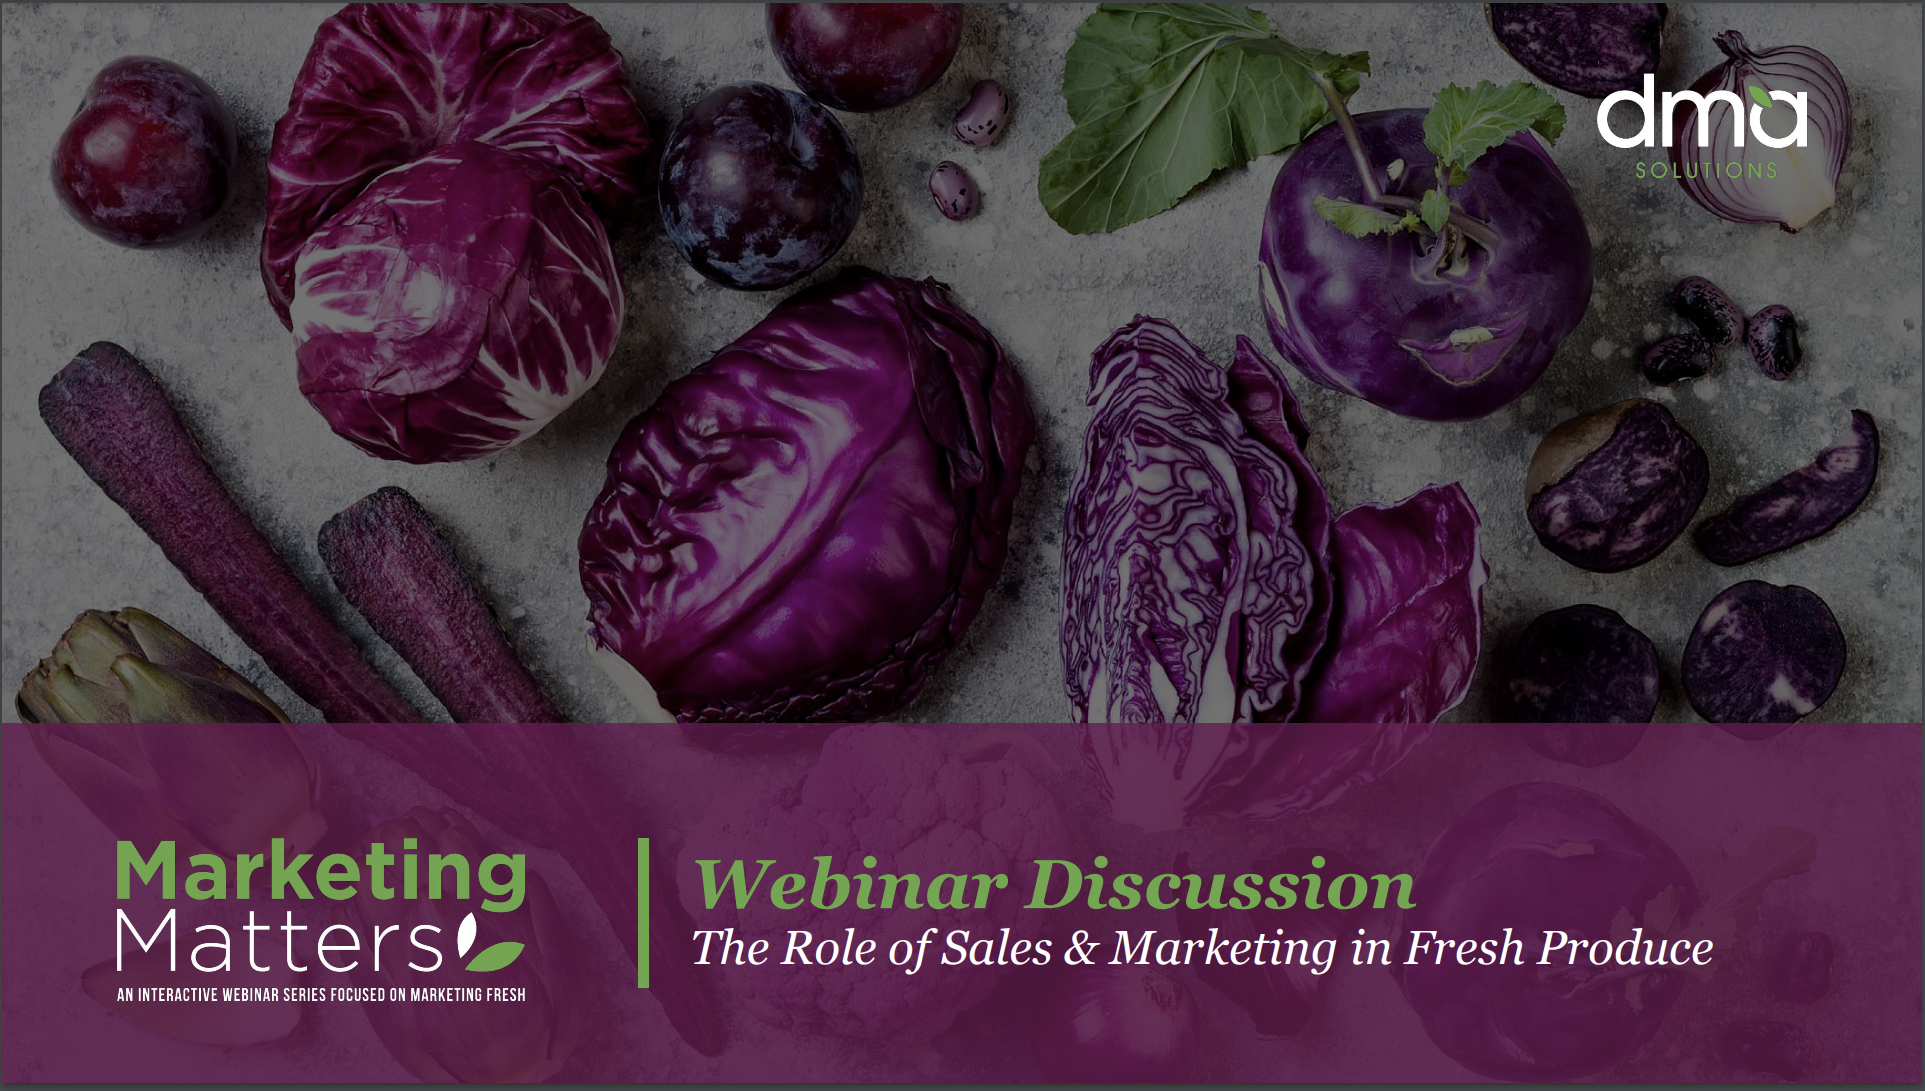 12 The Role of Sales and Marketing in Fresh Produce